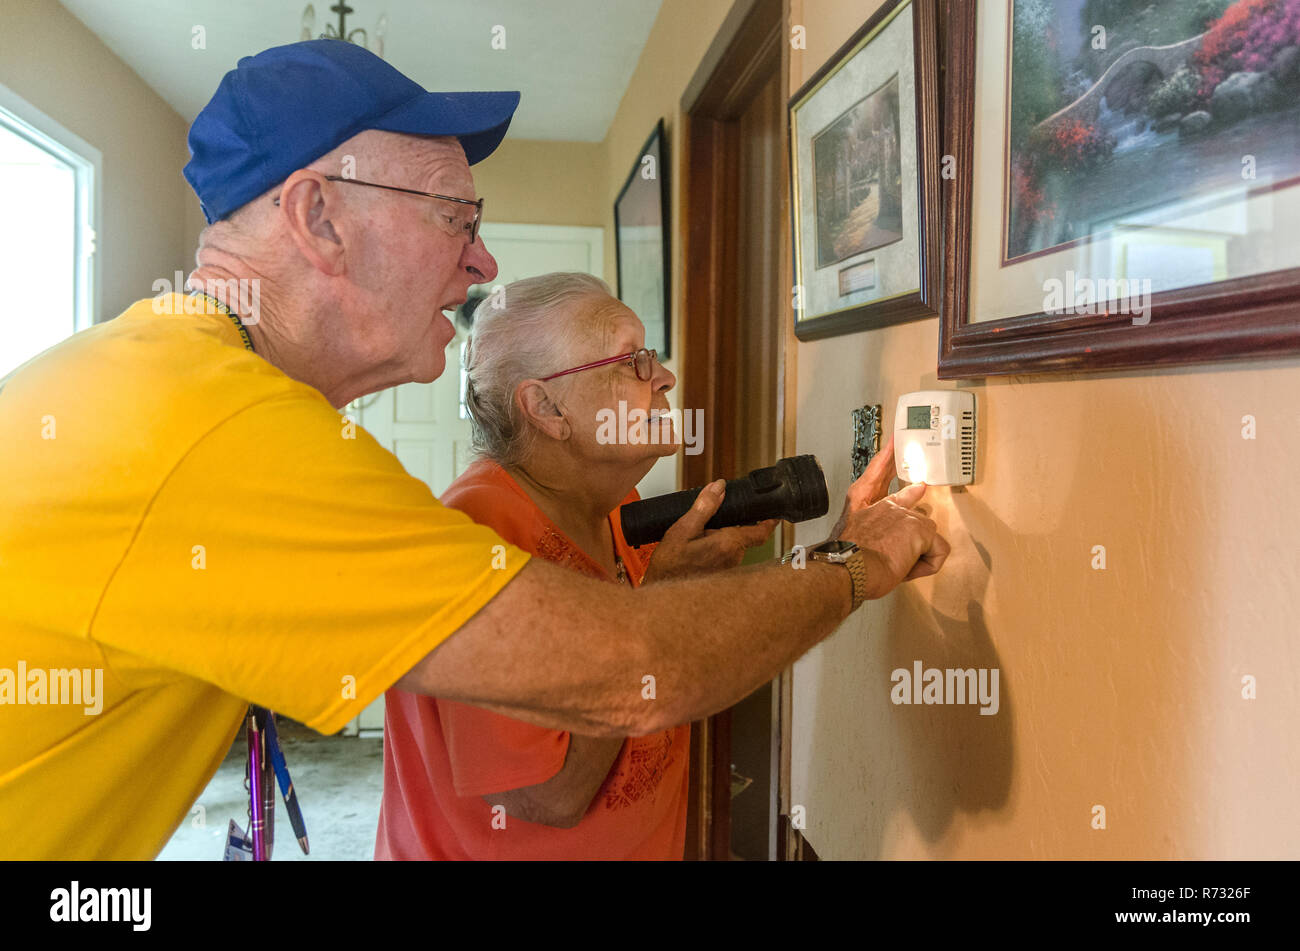 A Southern Baptist Disaster Relief volunteer helps a flood victim set the thermostat in her house after a flood in Baton Rouge, Louisiana. - Stock Image